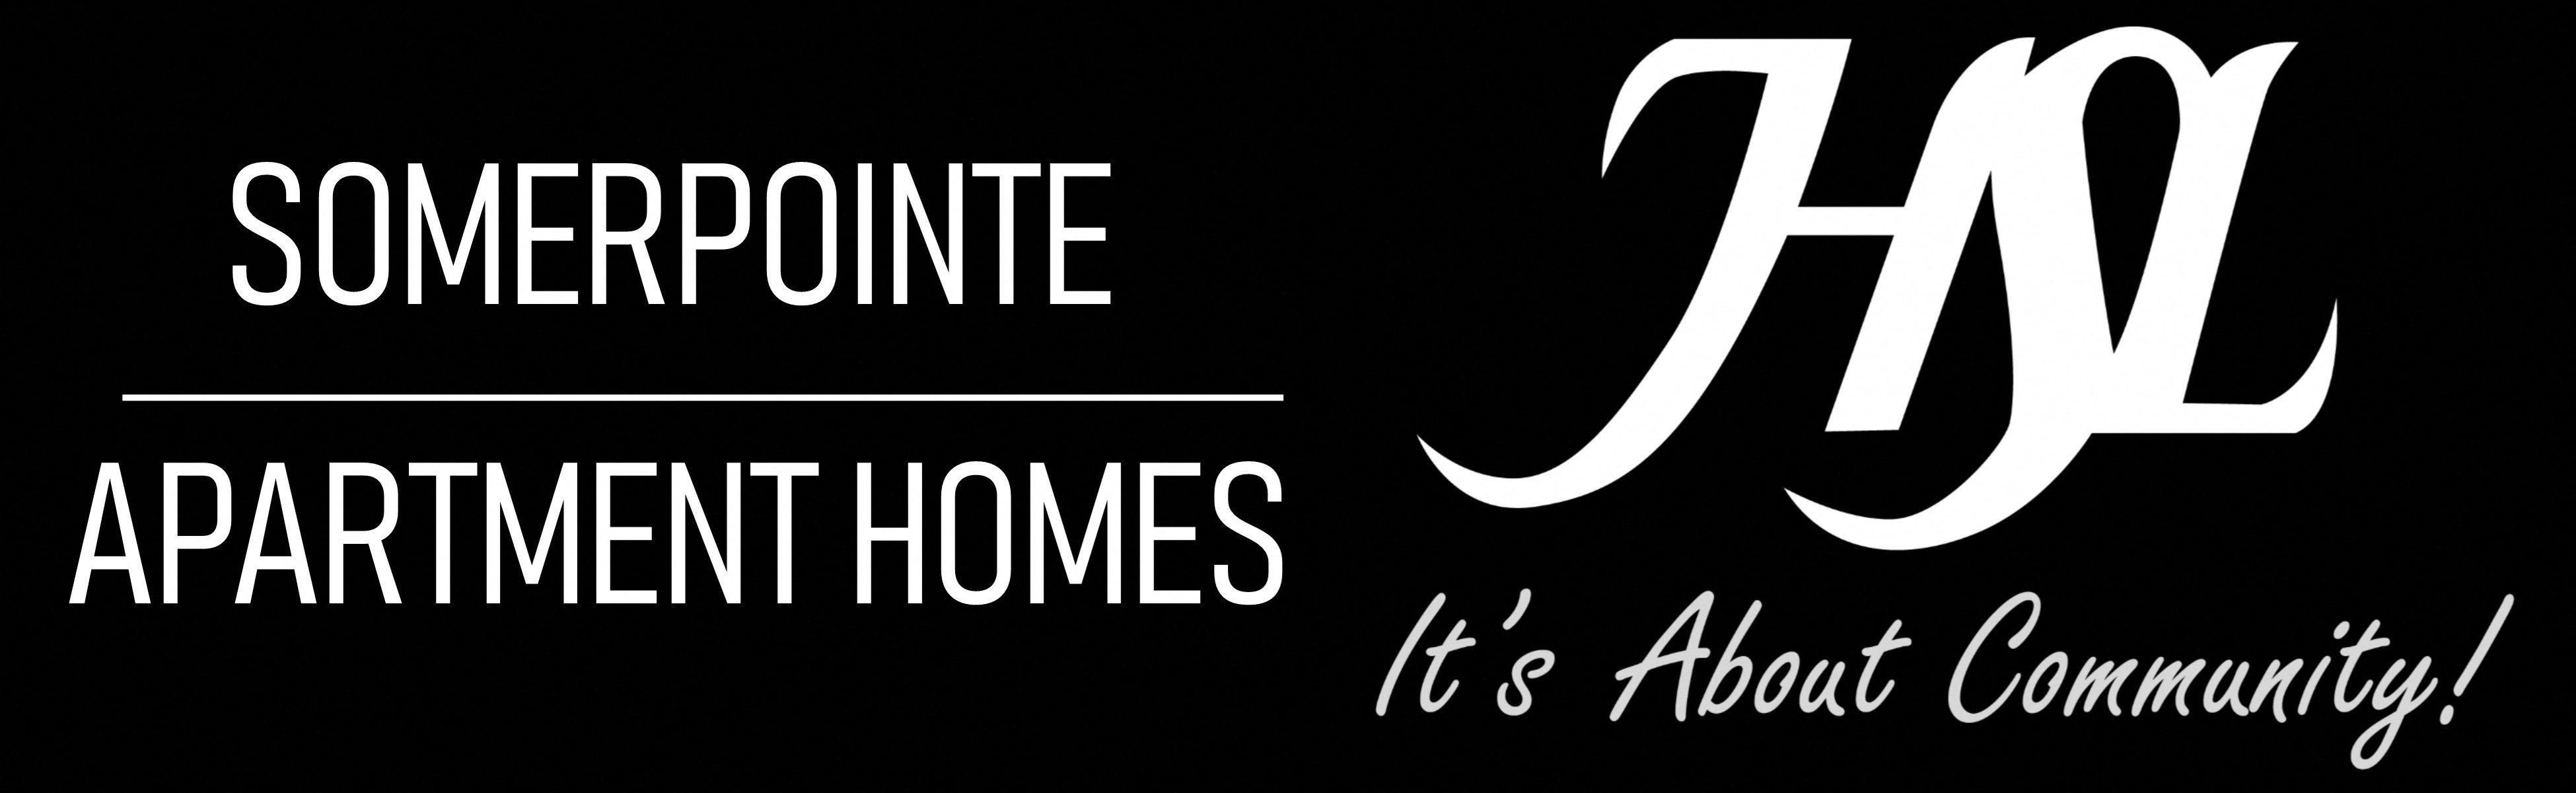 Somerpointe Apartment Homes Logo